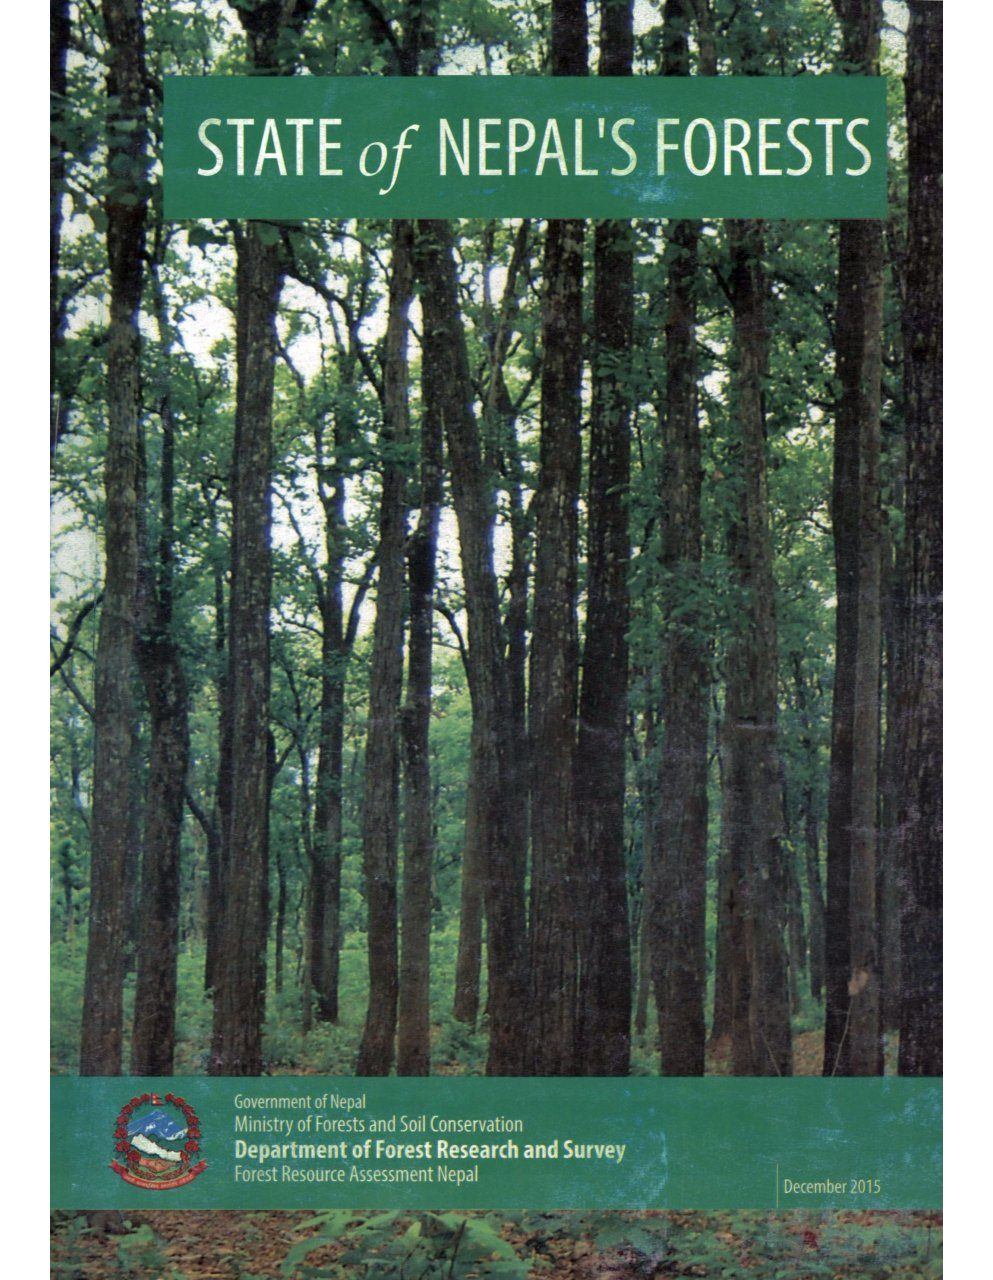 State of Nepal's Forests